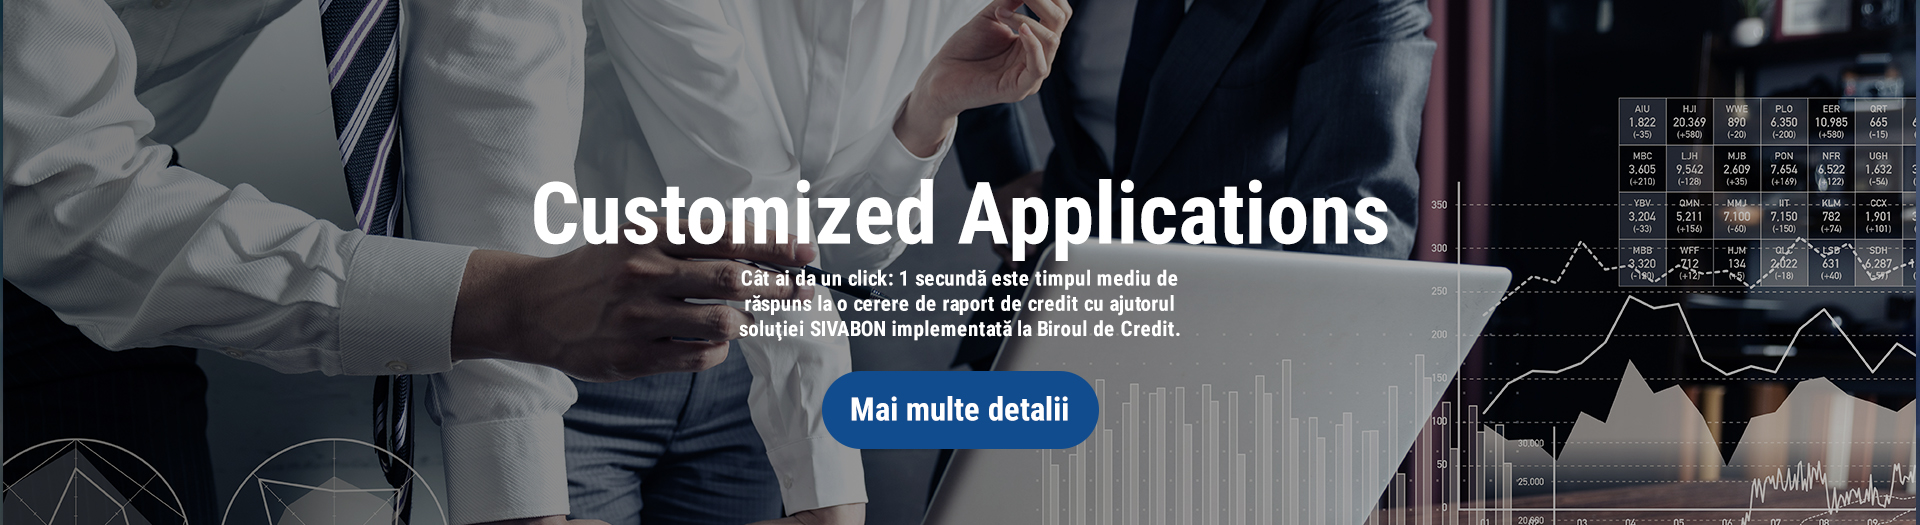 https://www.simavi.ro/customized-applications